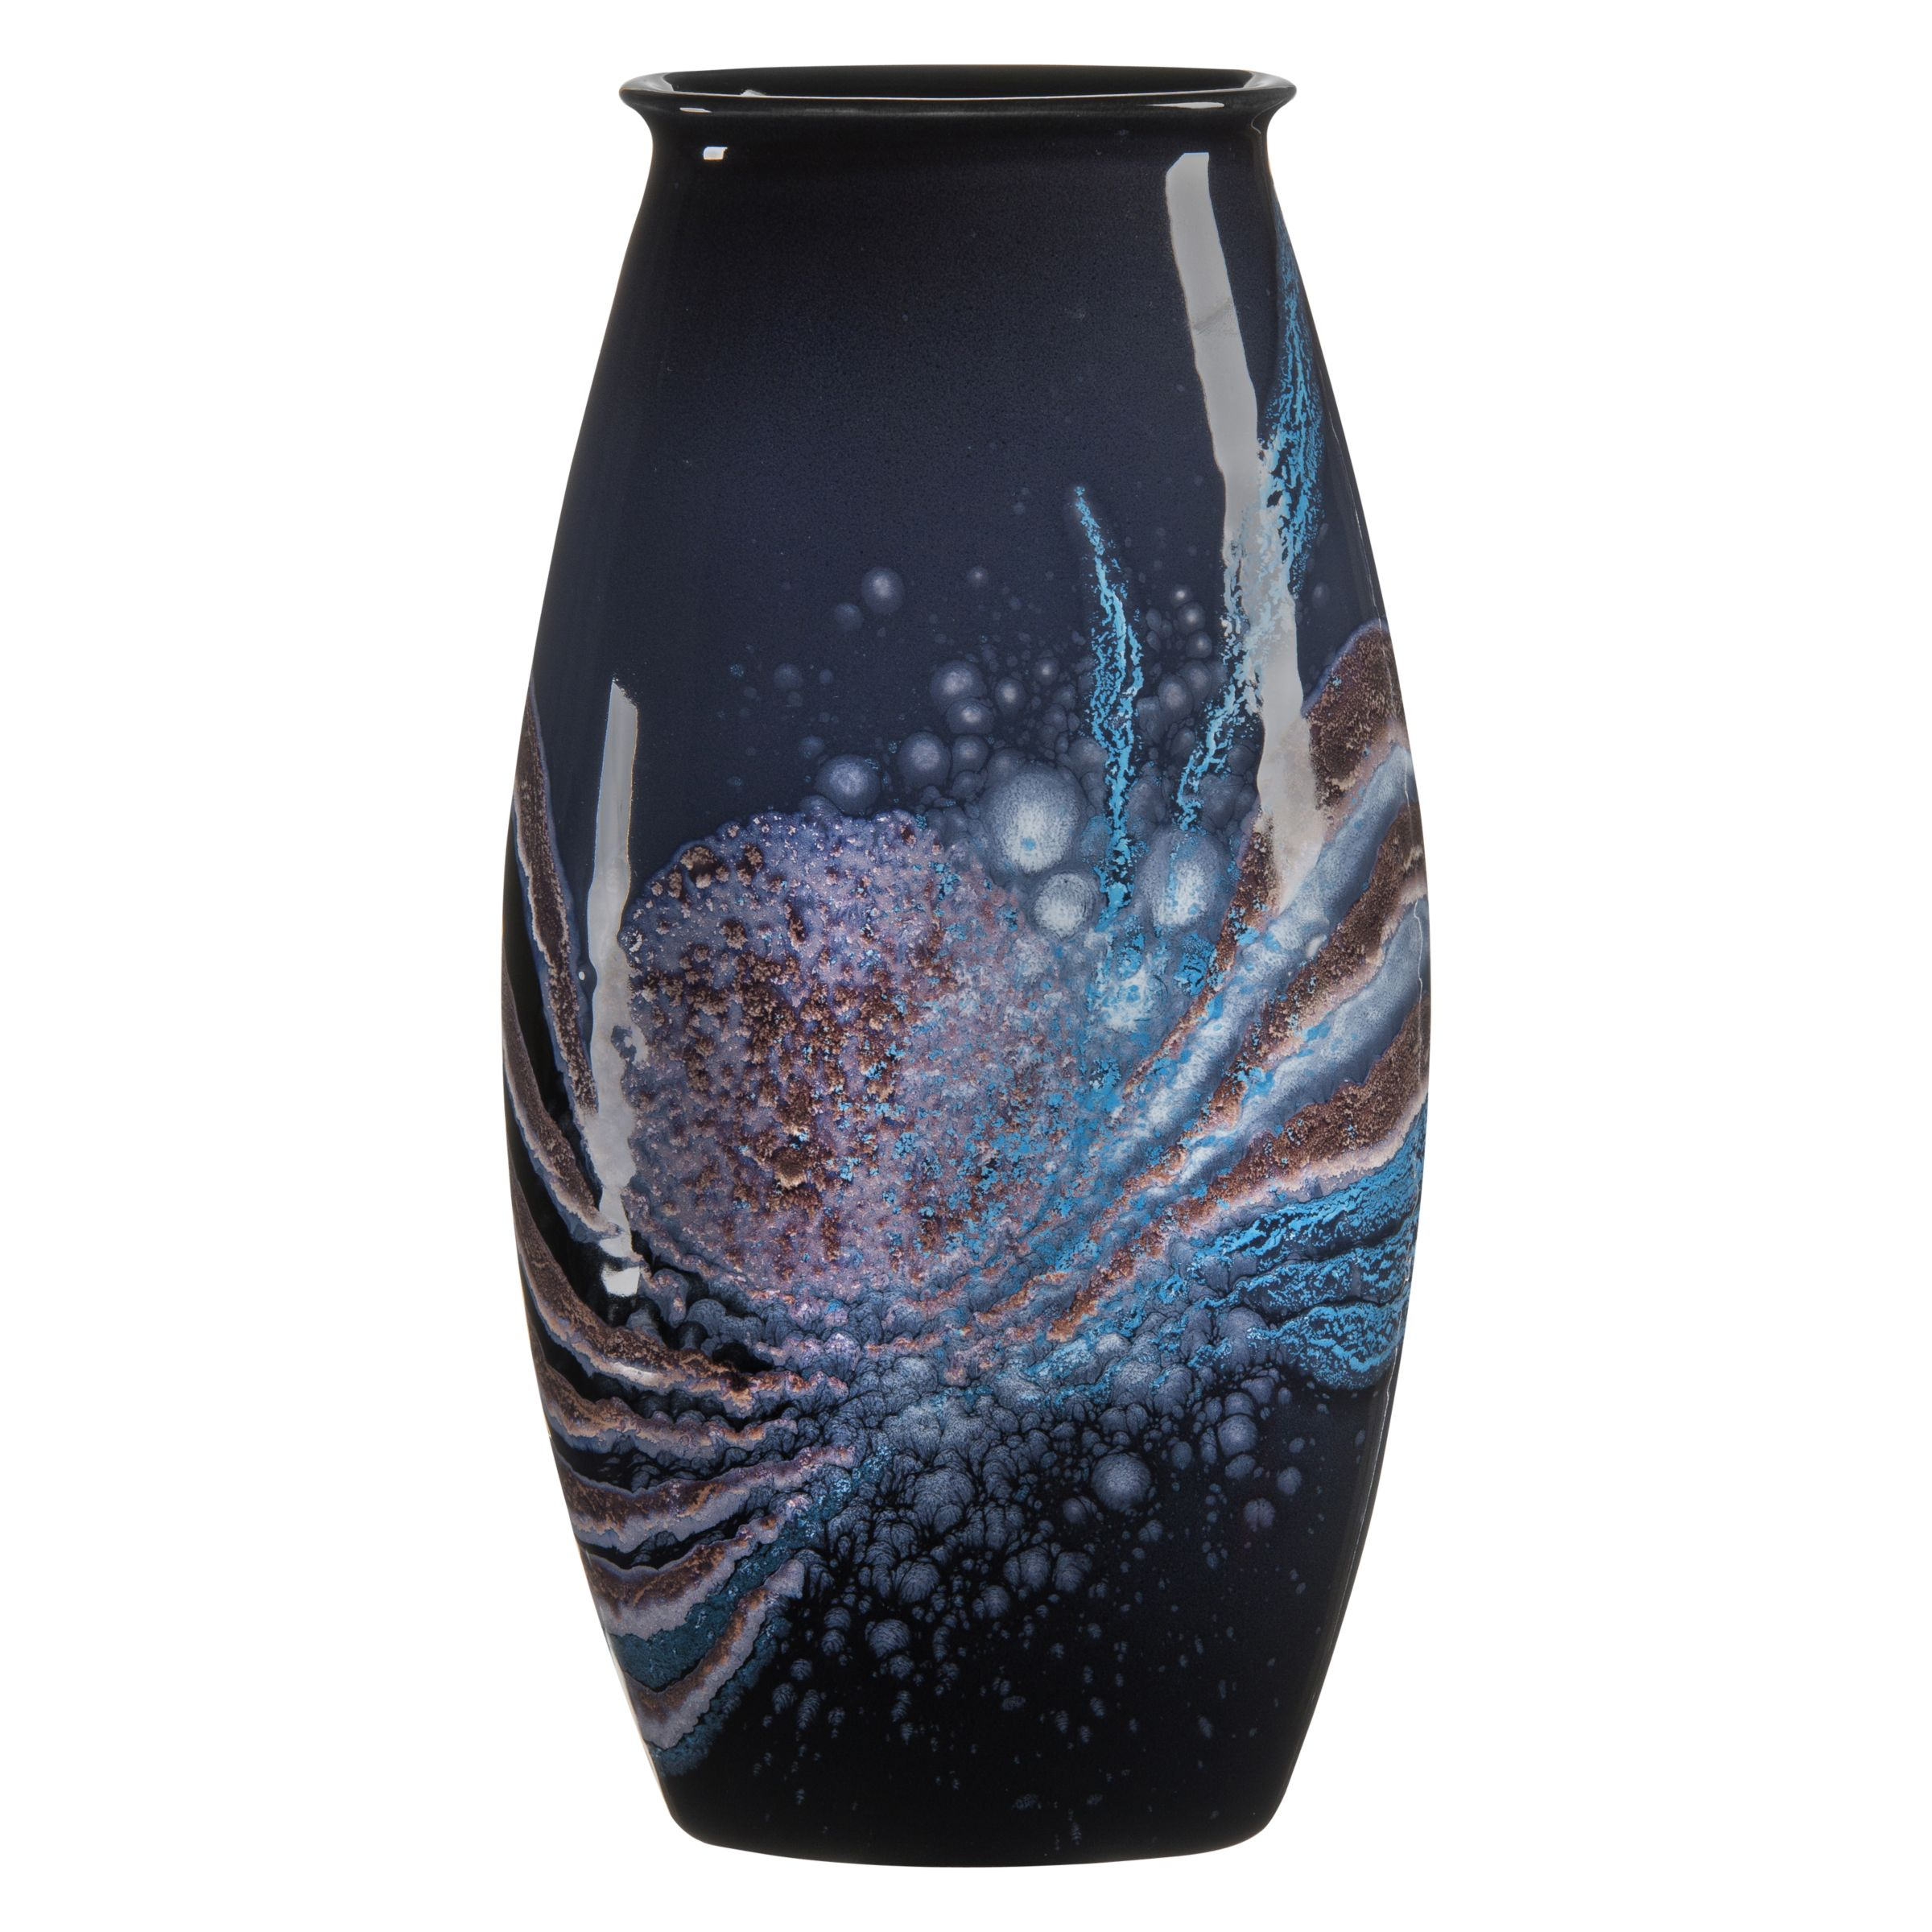 Poole Pottery Poole Pottery Celestial Manhattan Vase, H36cm, Grey/ Blue